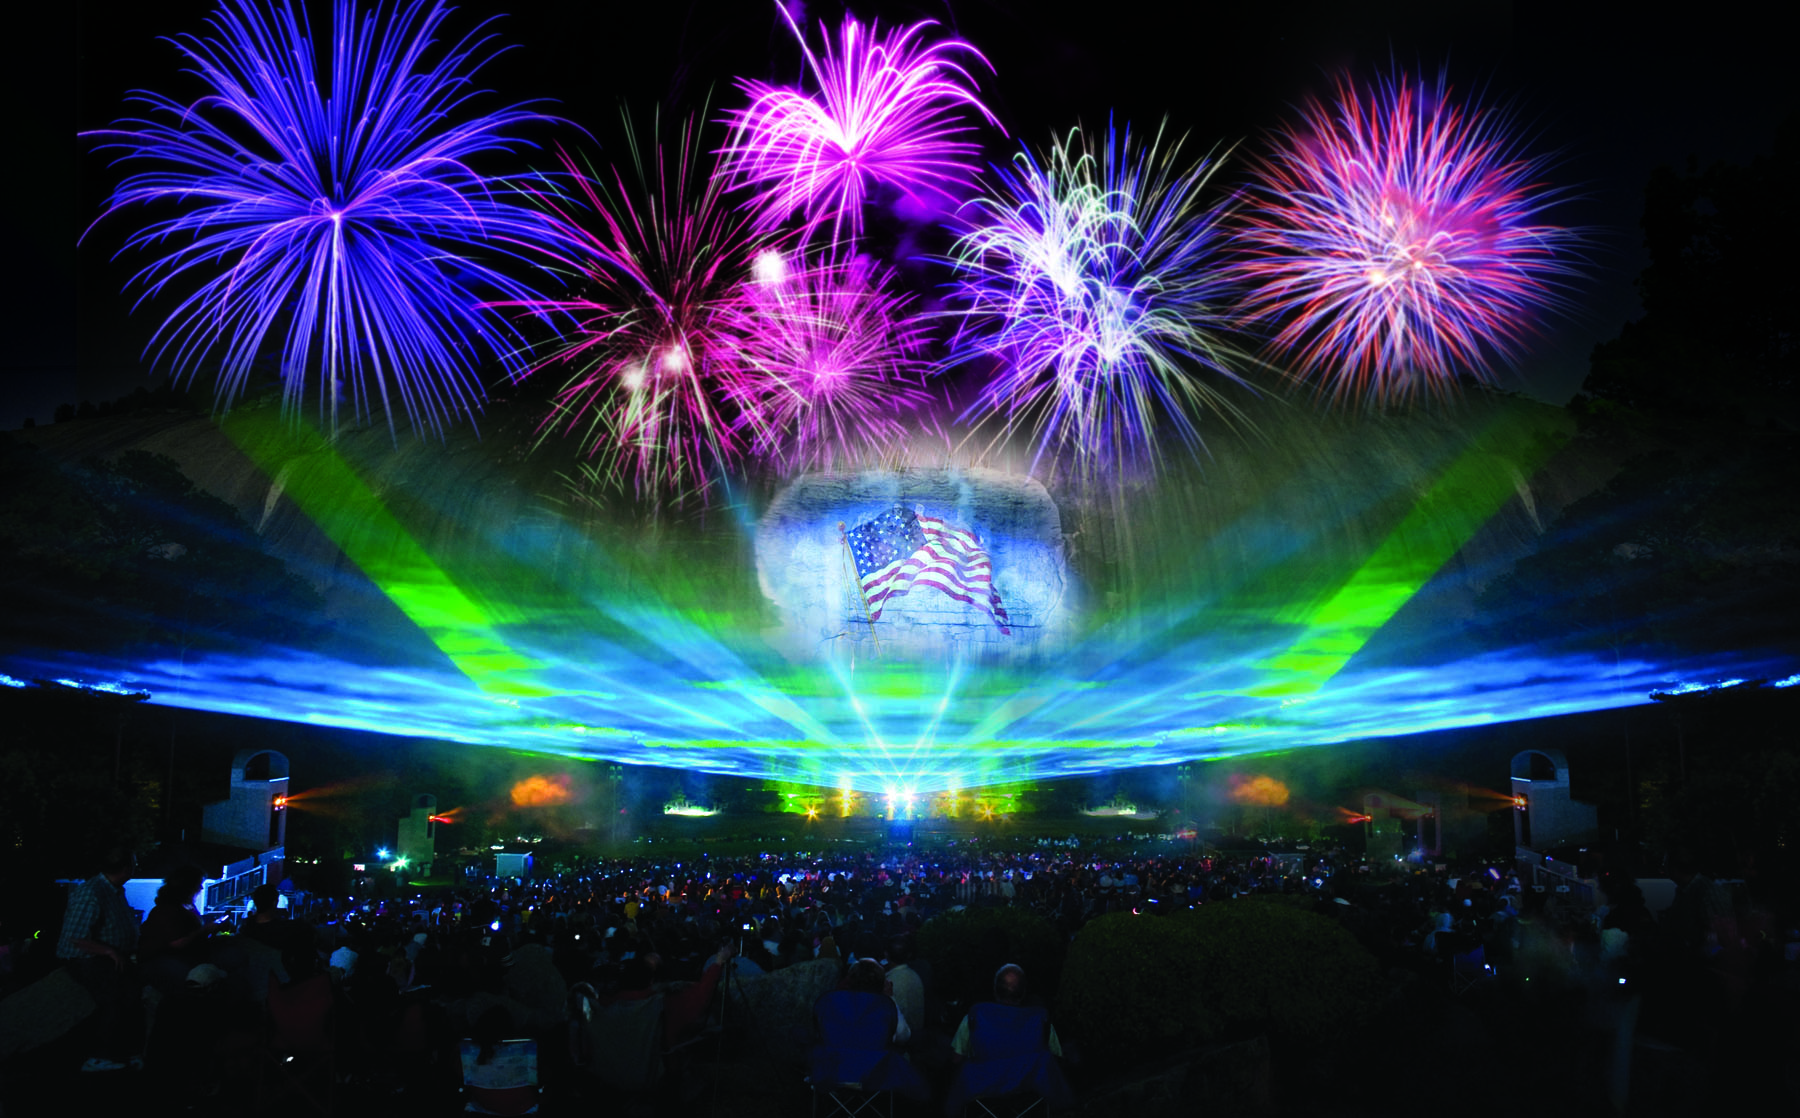 Lasershow and fireworks at Stone Mountain Park